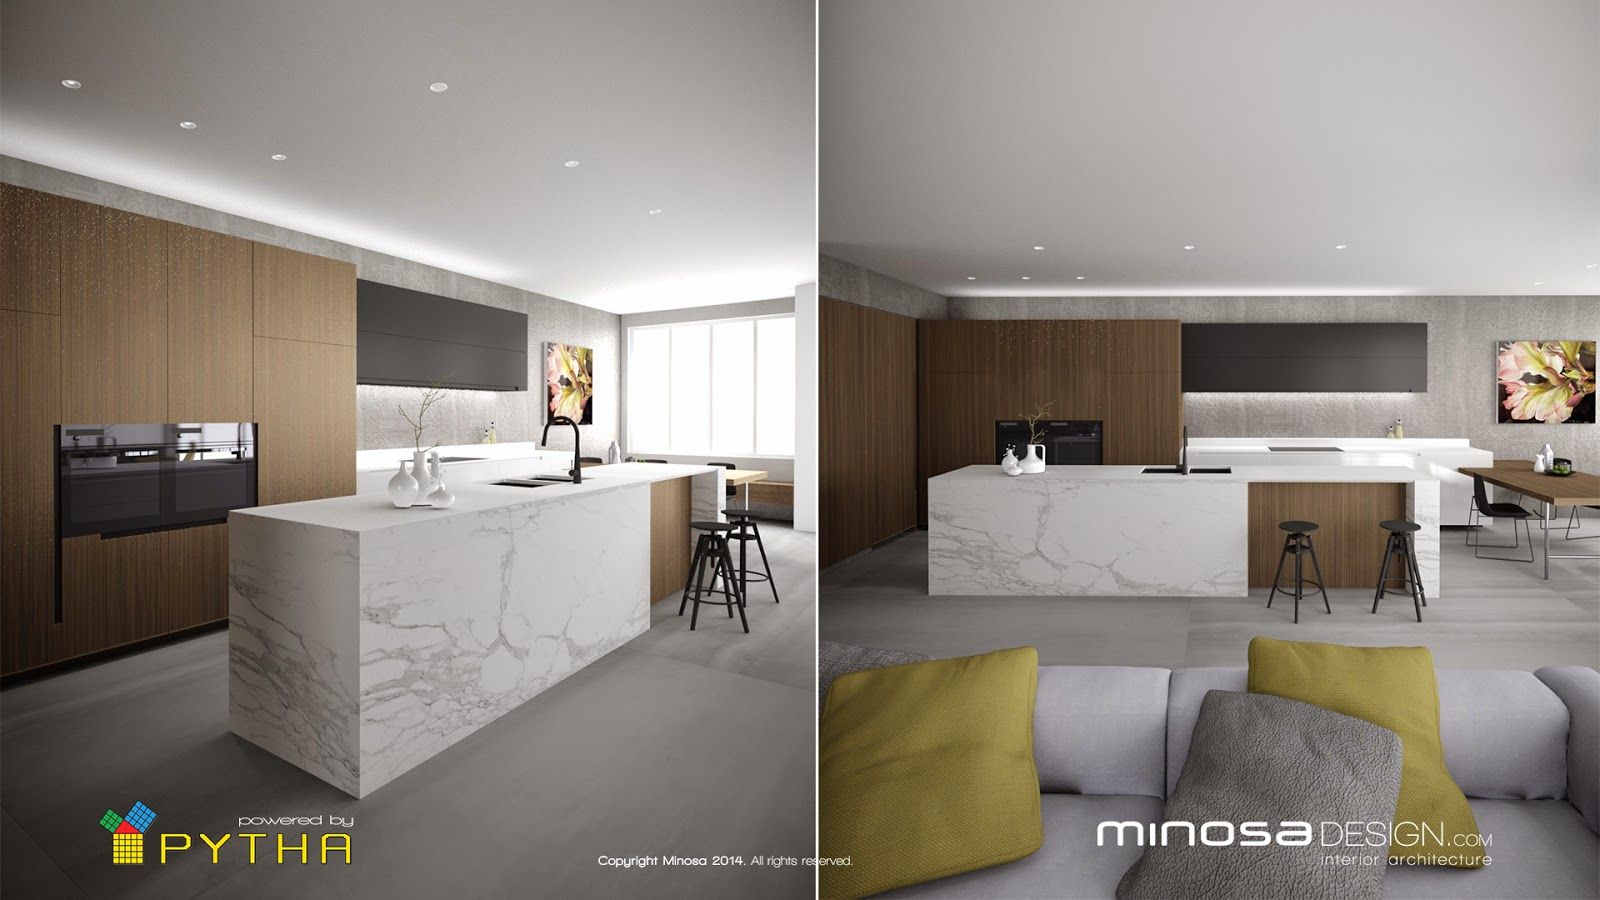 Minosa Design About Us